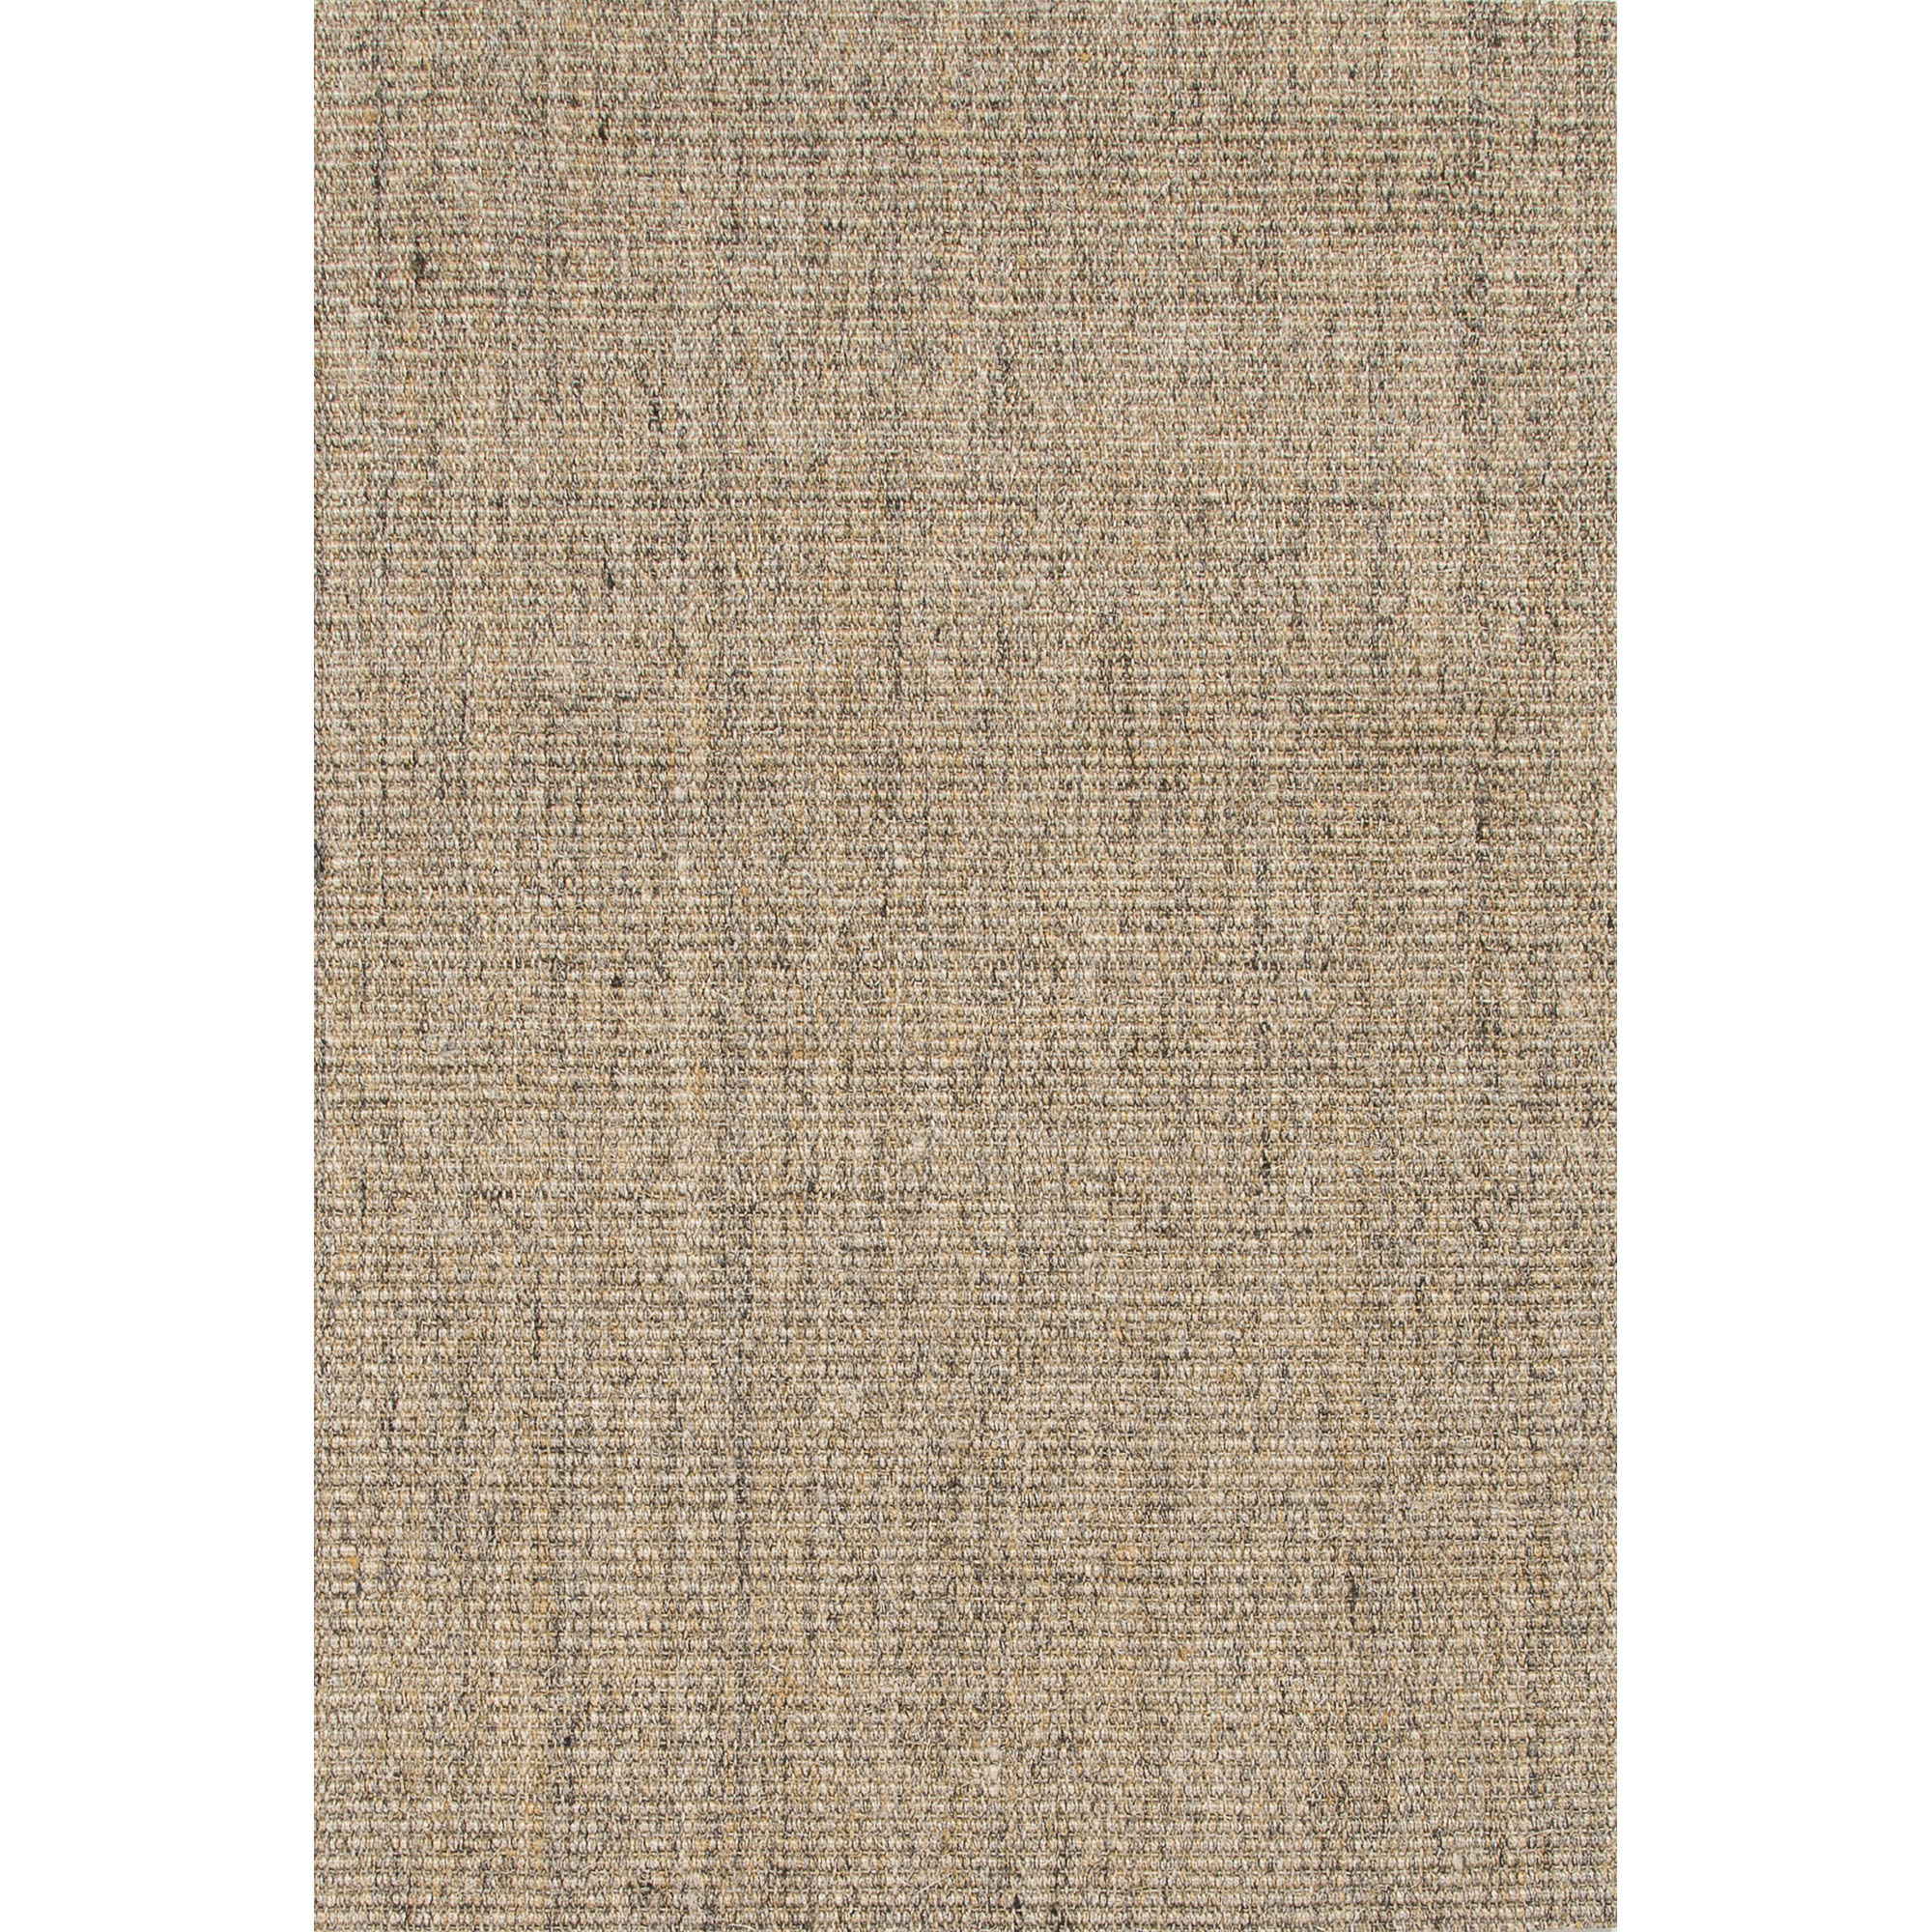 JAIPUR Rugs Naturals Sanibel 5 x 8 Rug - Item Number: RUG119154